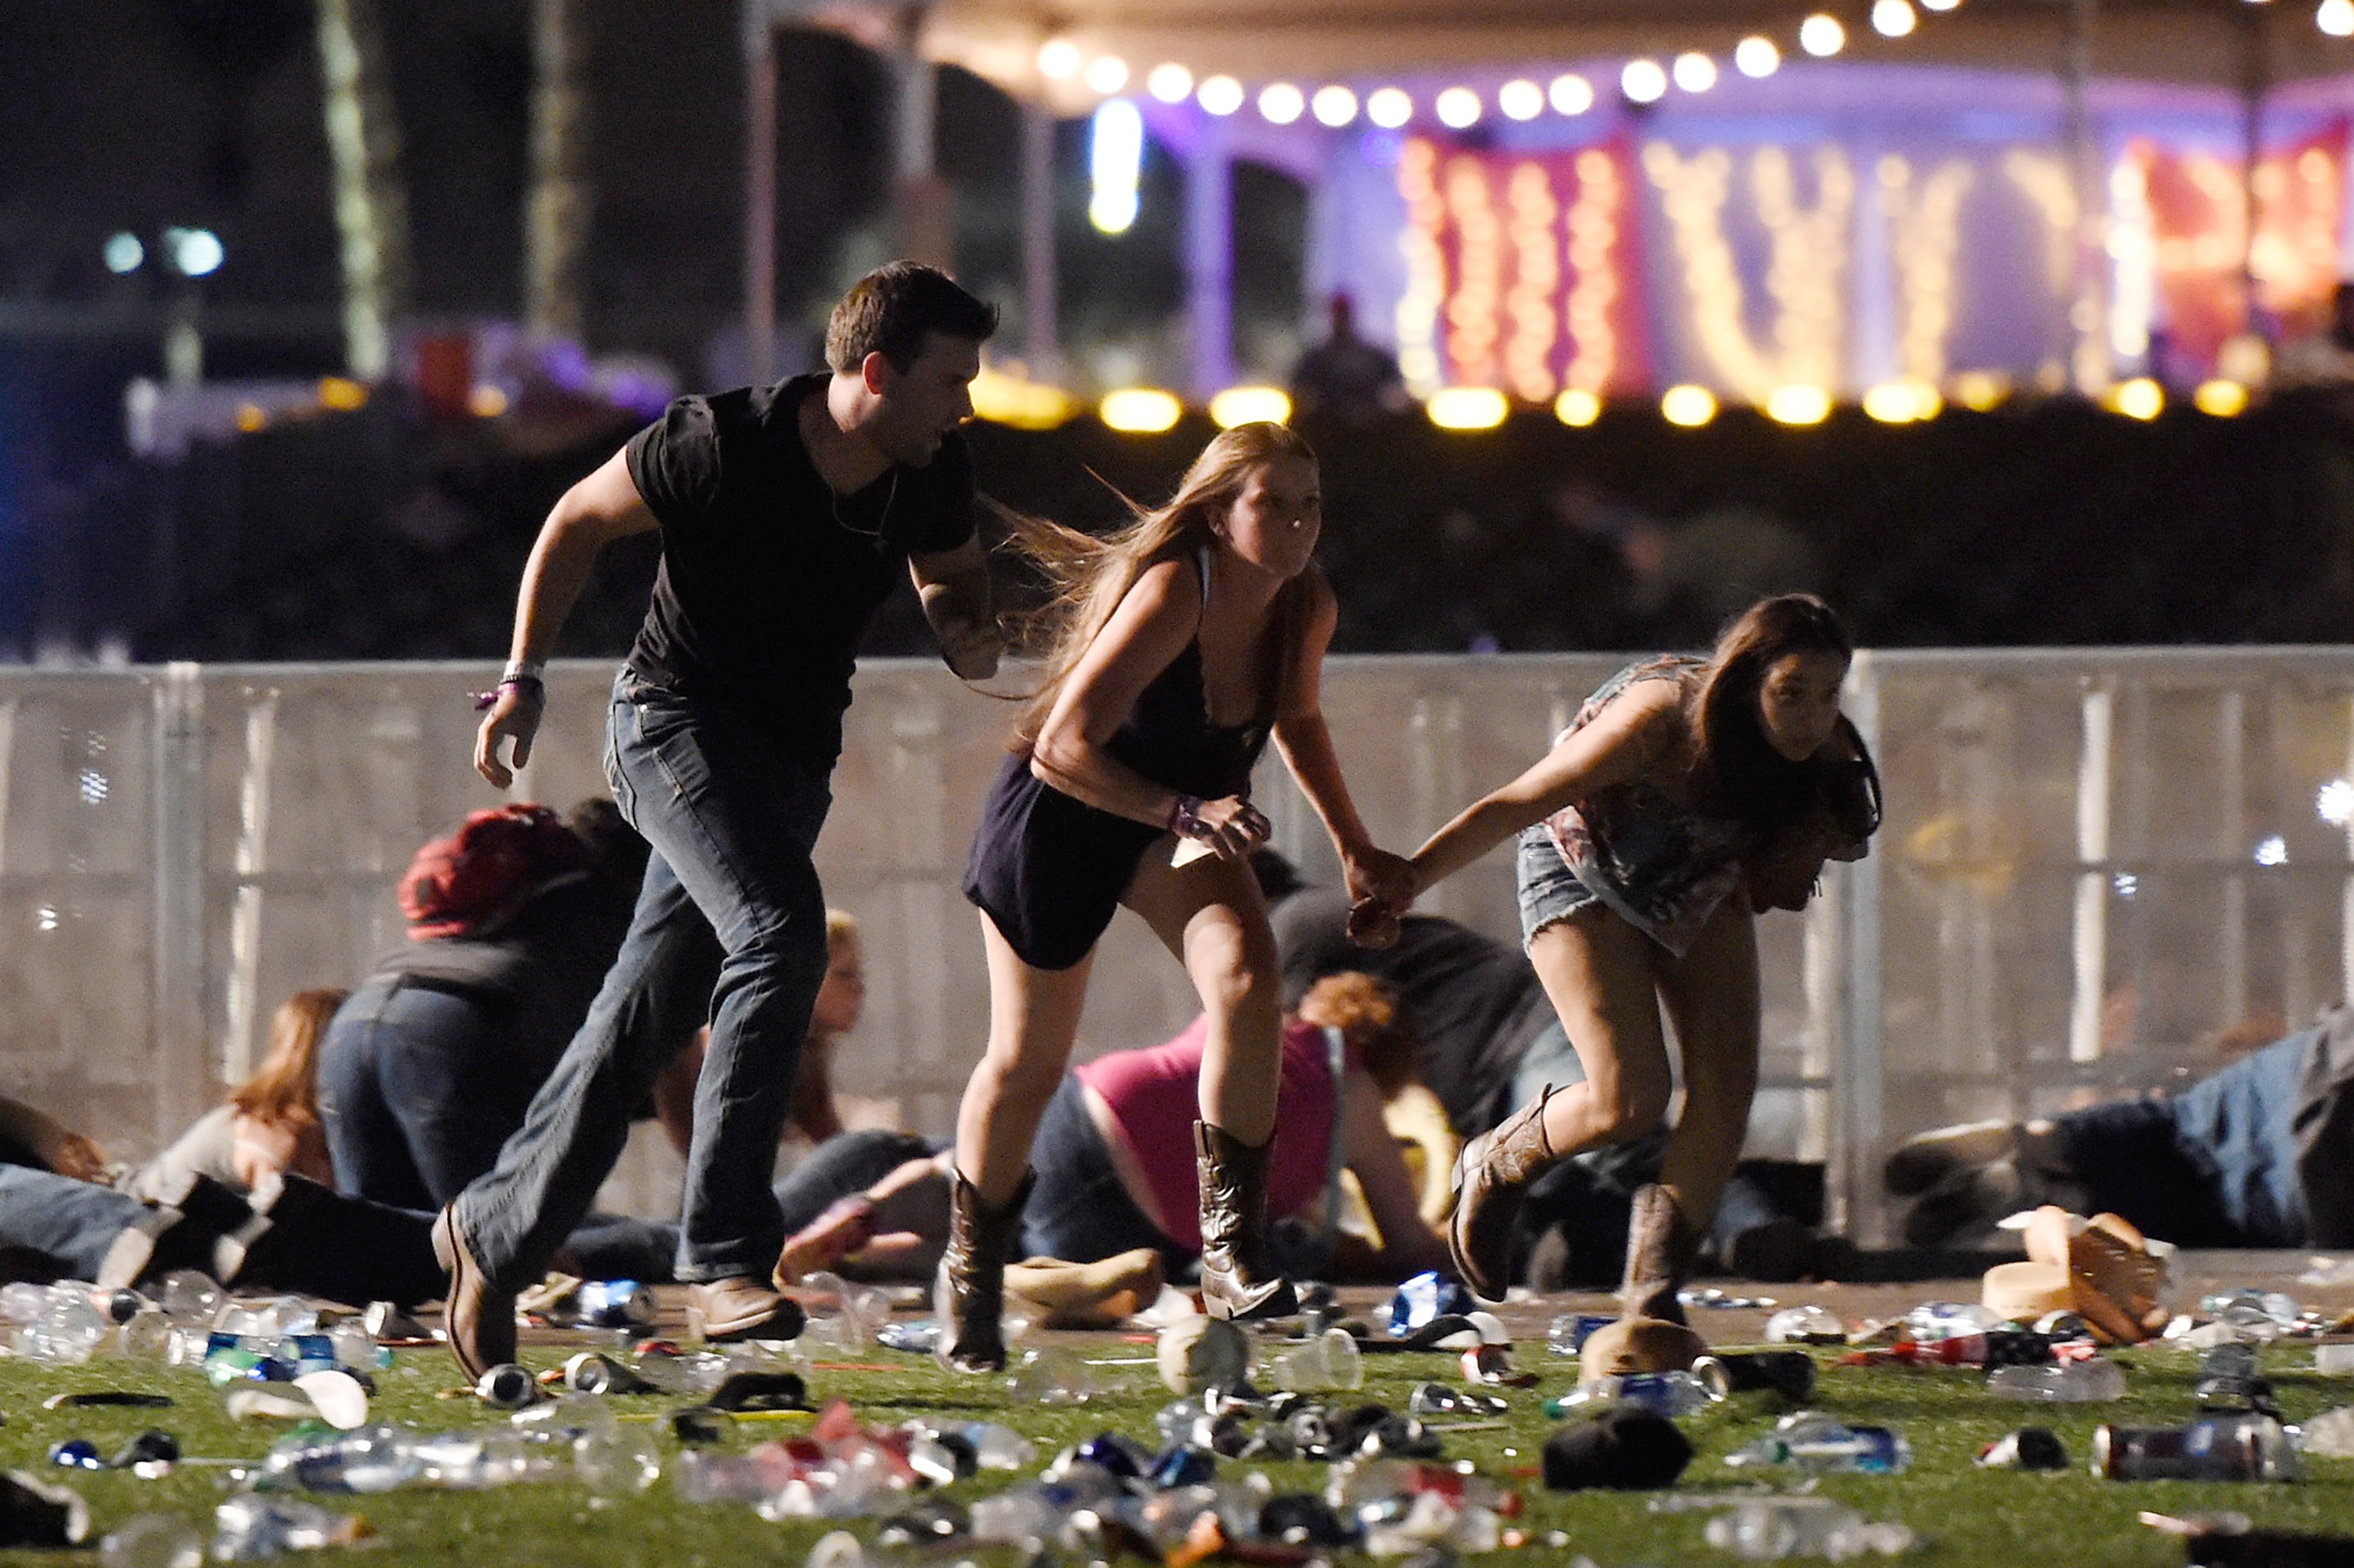 People run from the Route 91 Harvest country music festival after gunfire was heard on October 1, 2017, in Las Vegas, Nev. A gunman has opened fire on a music festival in Las Vegas, leaving at least 20 people dead and more than 100 injured. Polic